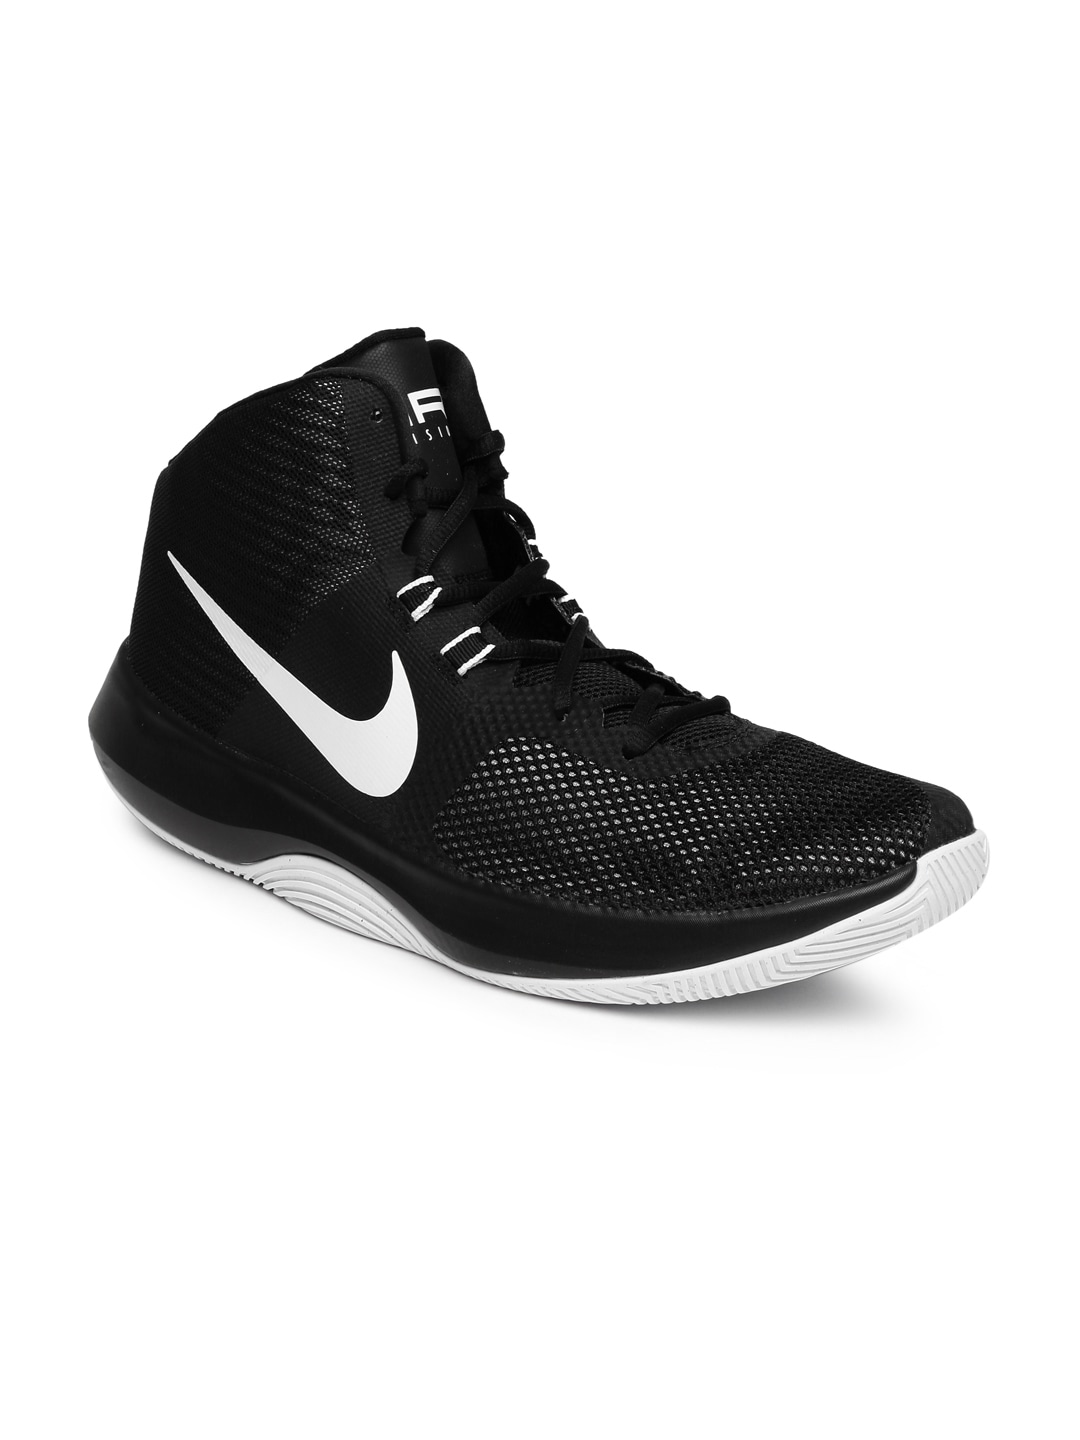 Sale Shoes, Sneakers, Clothing & Athletic Gear | Finish Line